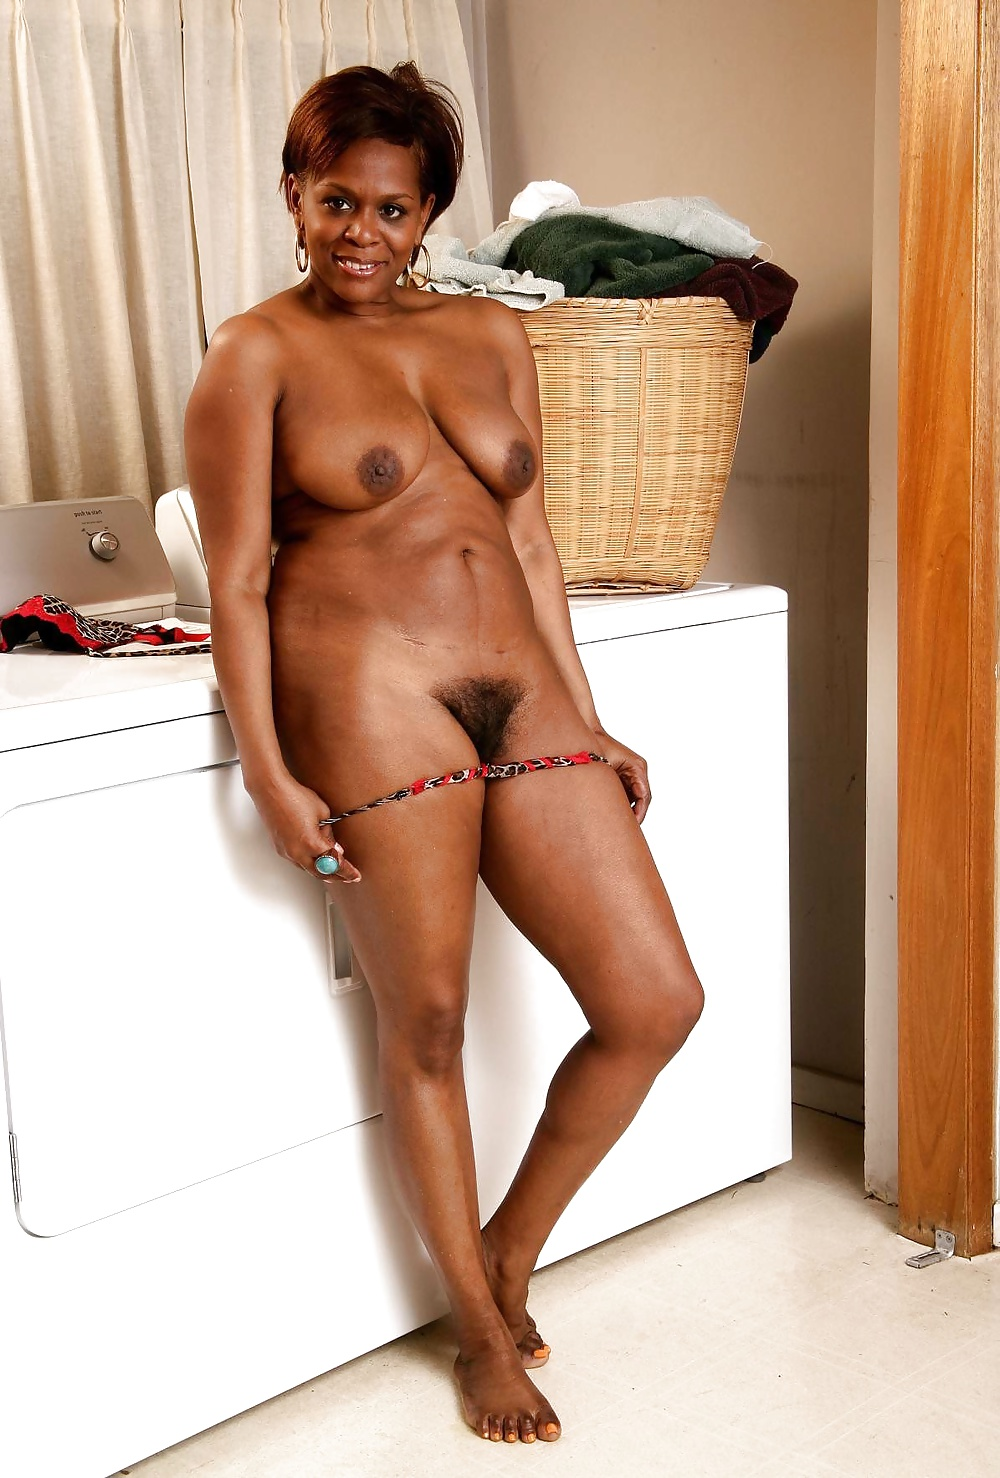 just-nude-ebony-mature-pics-amatuer-slow-deep-blow-job